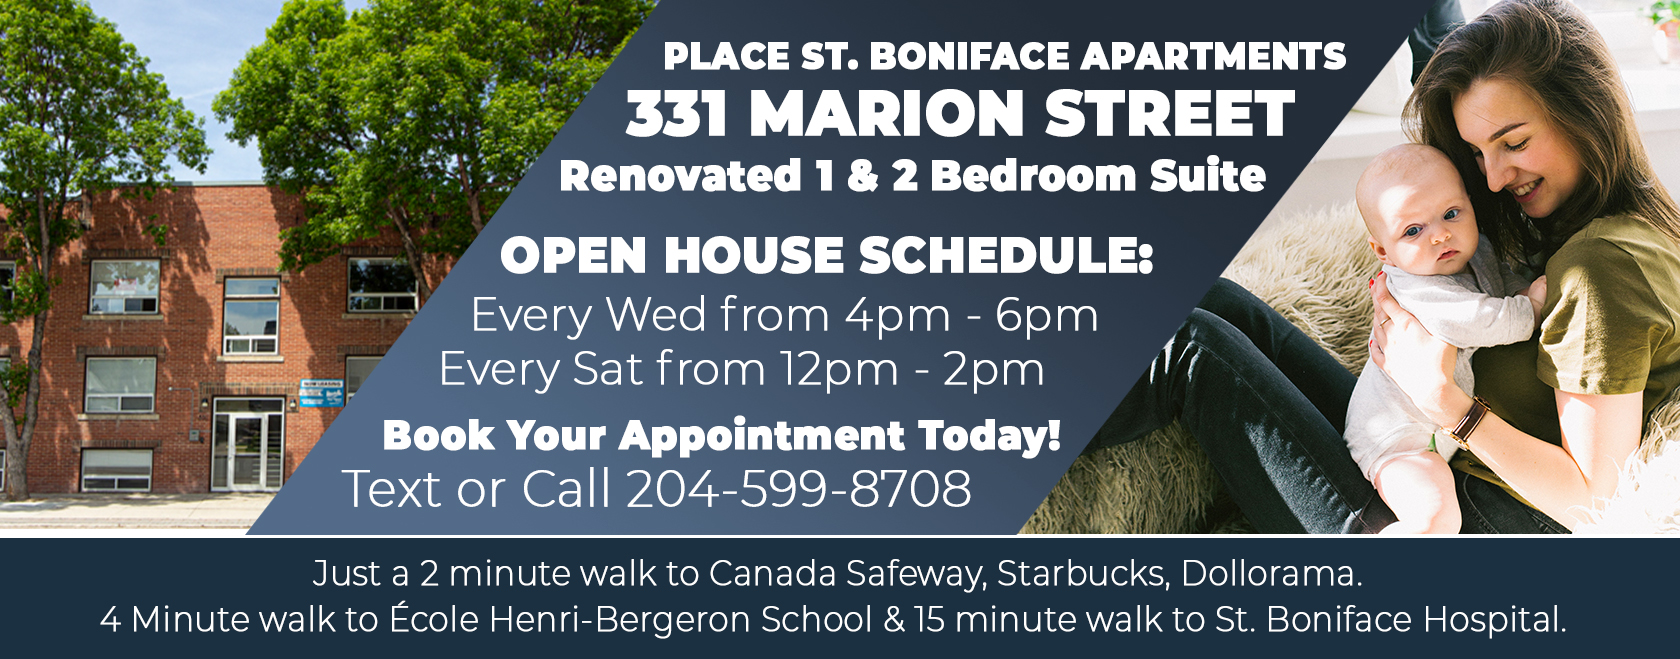 Place St Boniface - Open House at 331 Marion Street.jpg